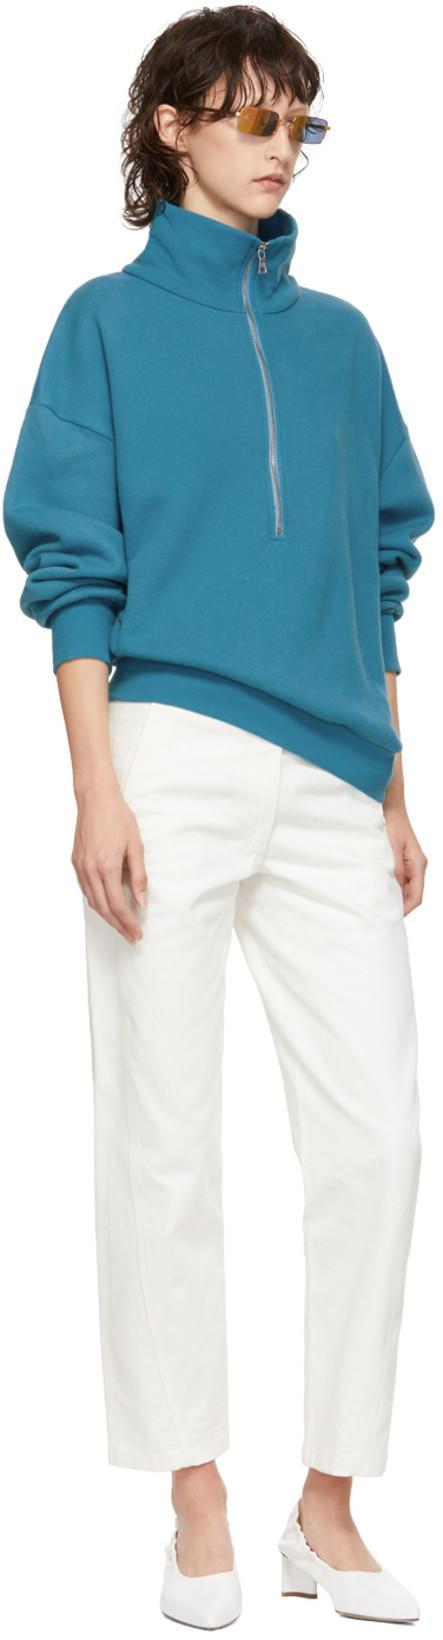 7df56b9406 SIMON MILLER Simon Miller Blue Rime Half-Zip Sweater in 54717 Teal